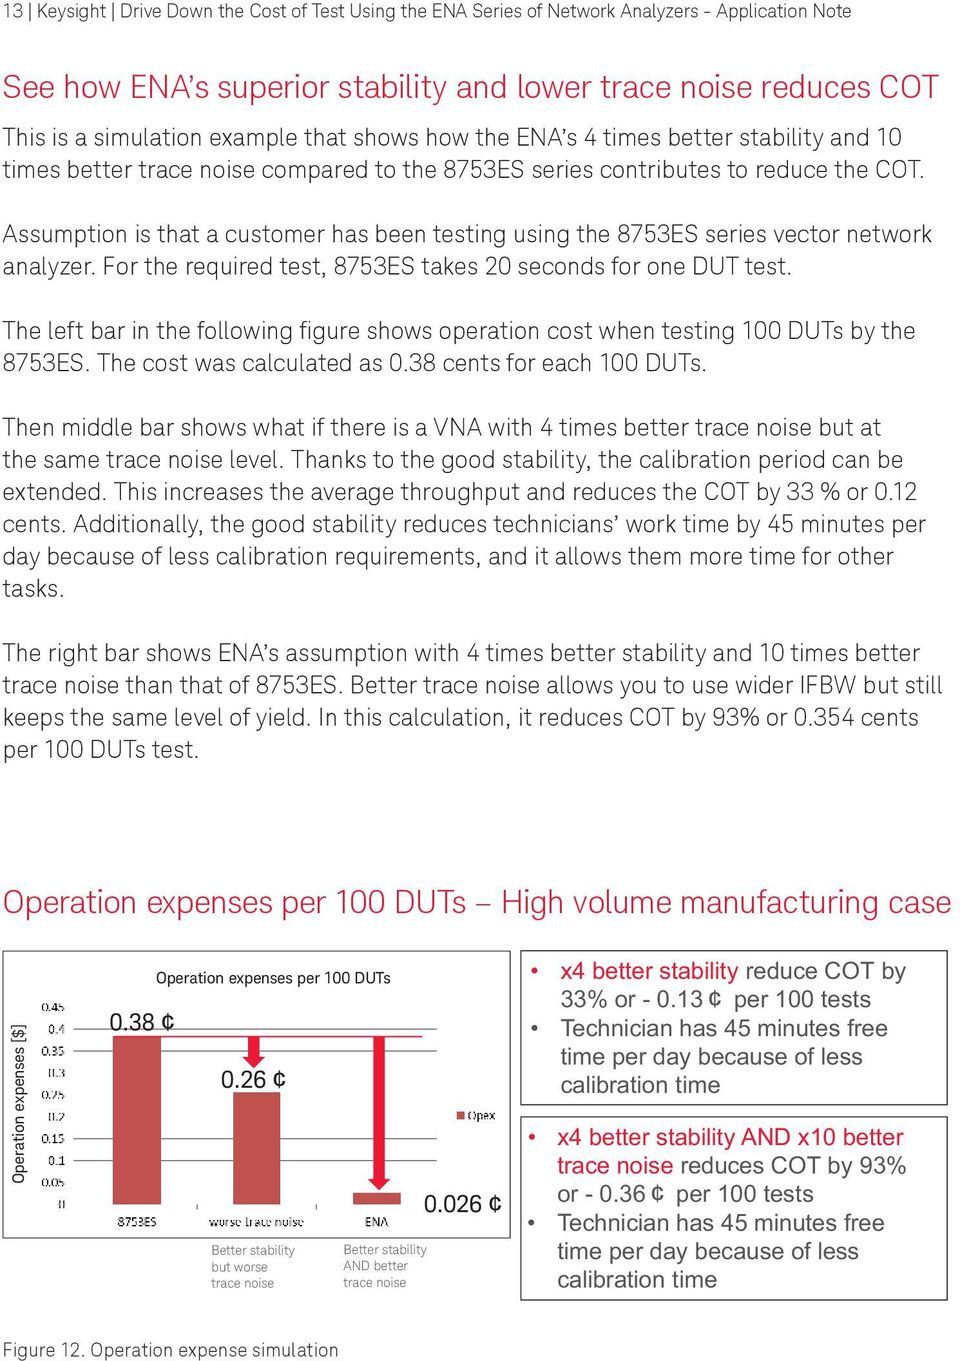 Assumption is that a customer has been testing using the 8753ES series vector network analyzer. For the required test, 8753ES takes 20 seconds for one DUT test.